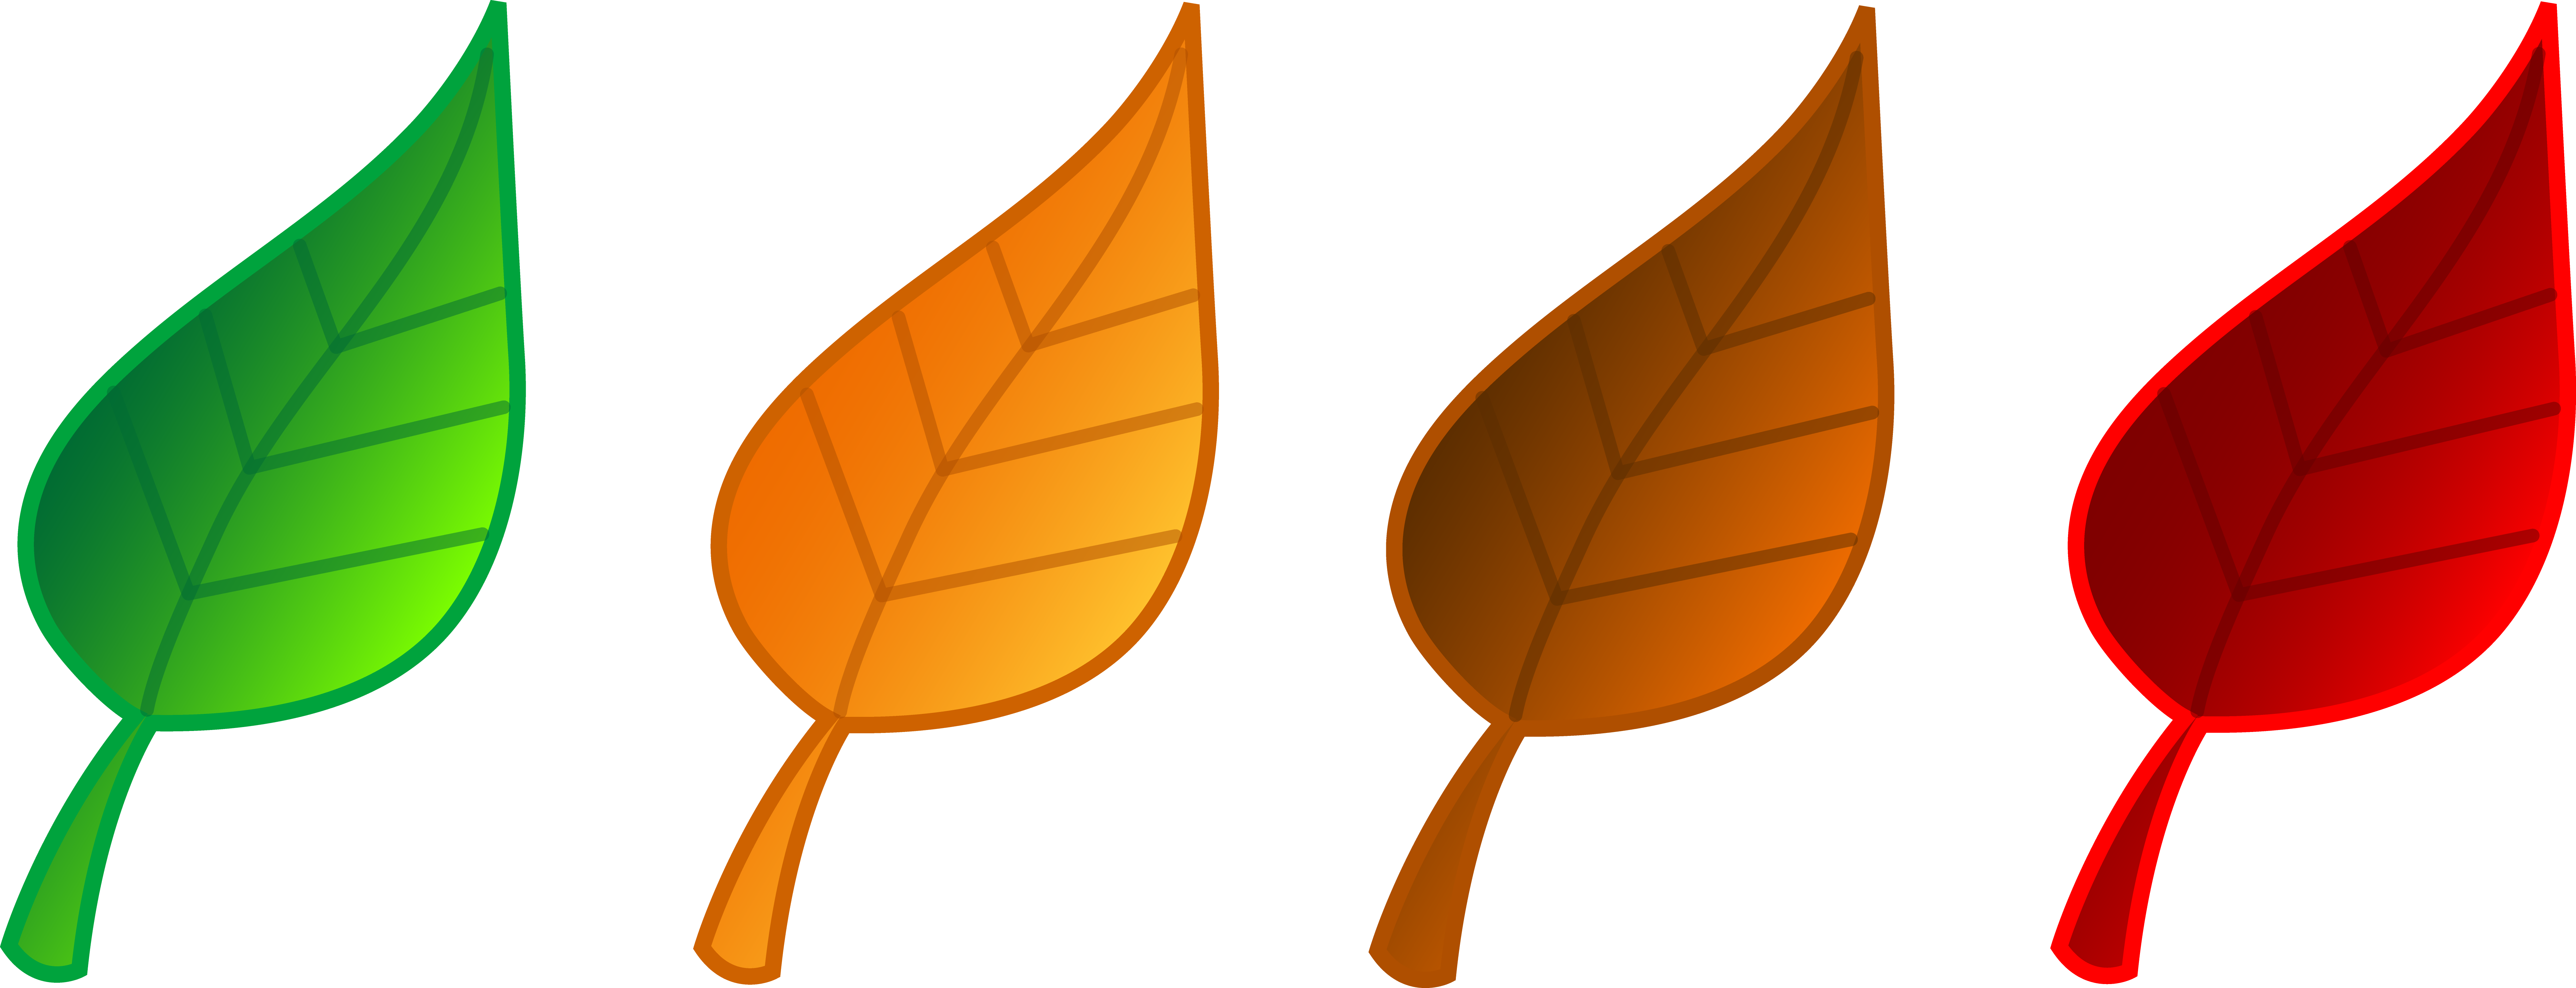 7840x3006 Fall Leaves Autumn Clip Art Free Clipart Clipartcow 2